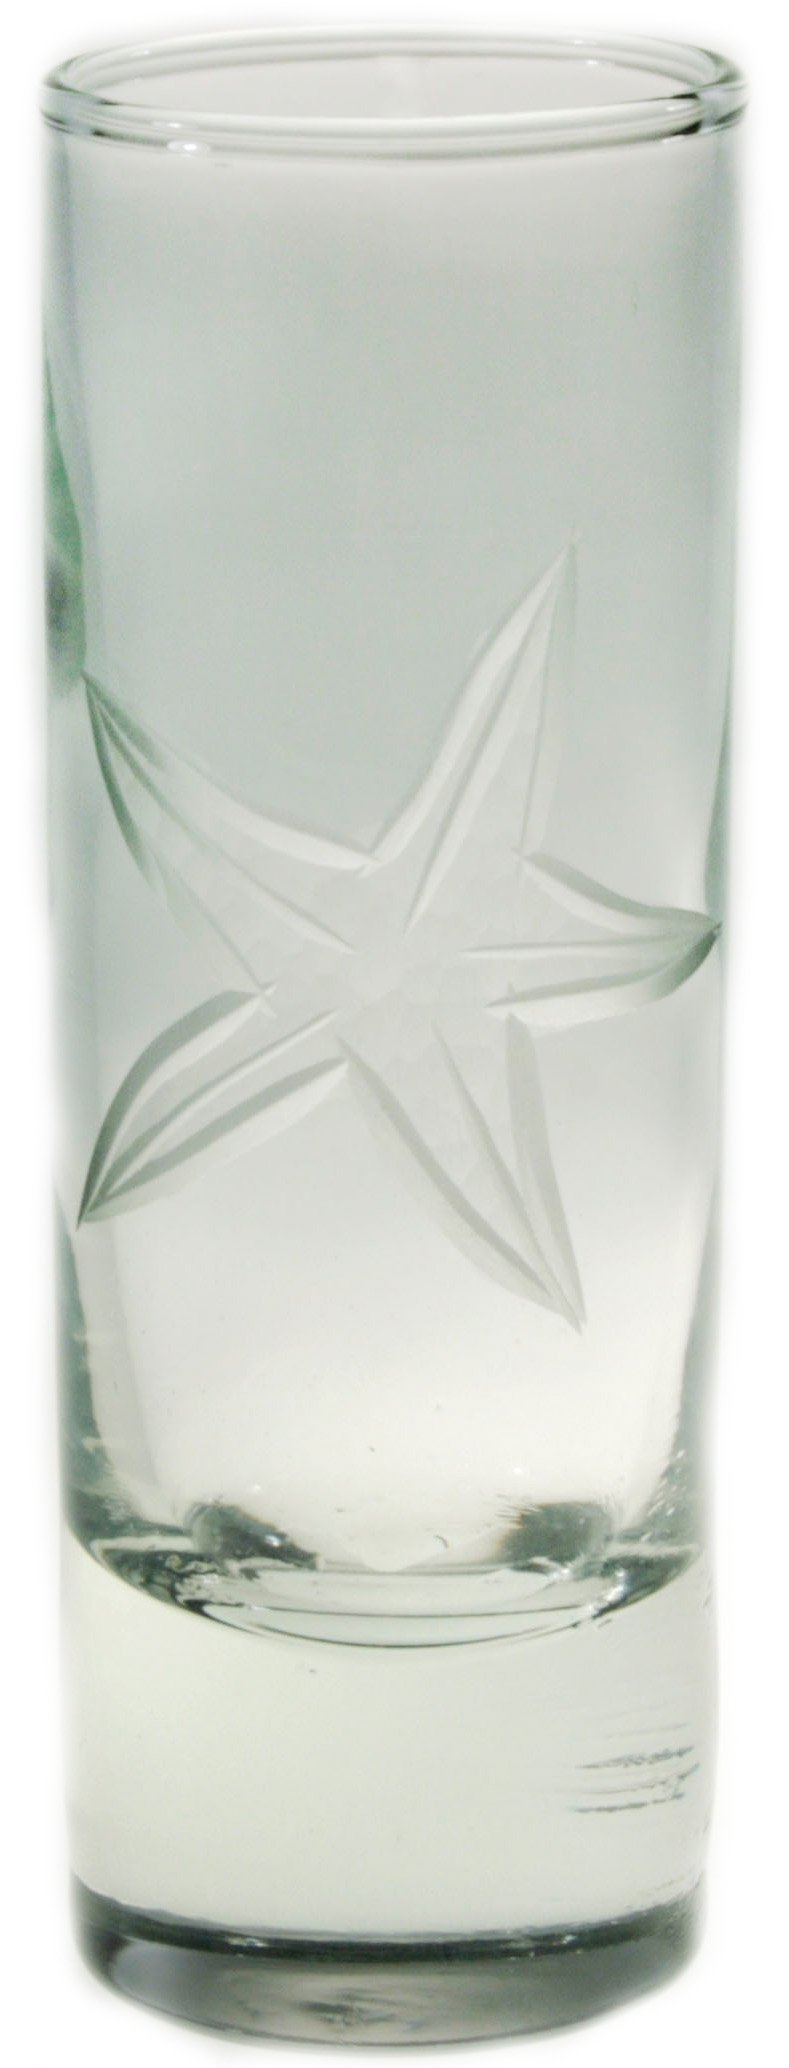 Starfish Cordial Glass 2.5oz